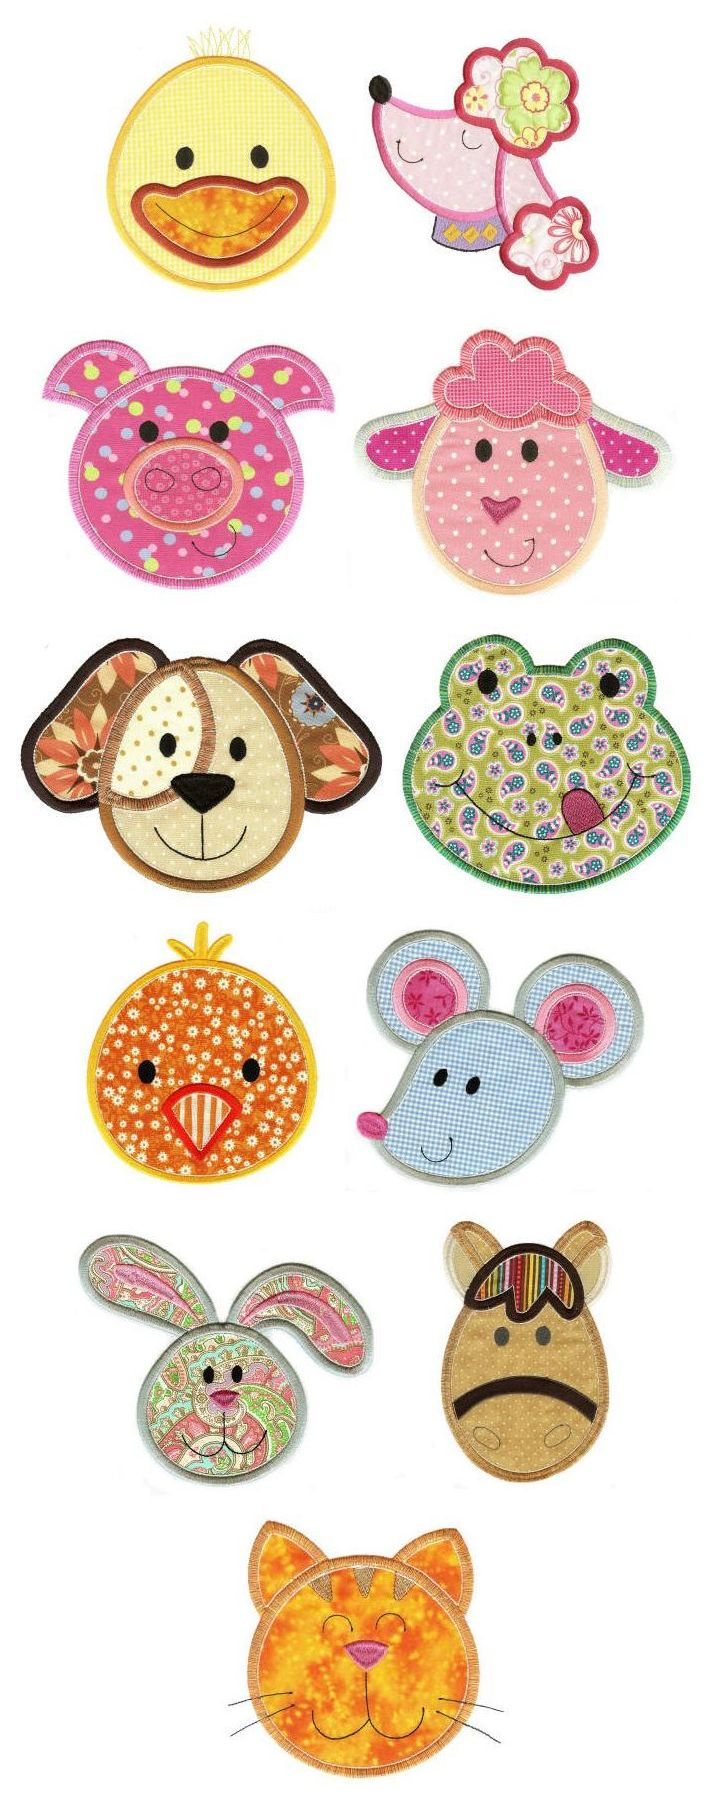 Cute animal faces applique design set available for